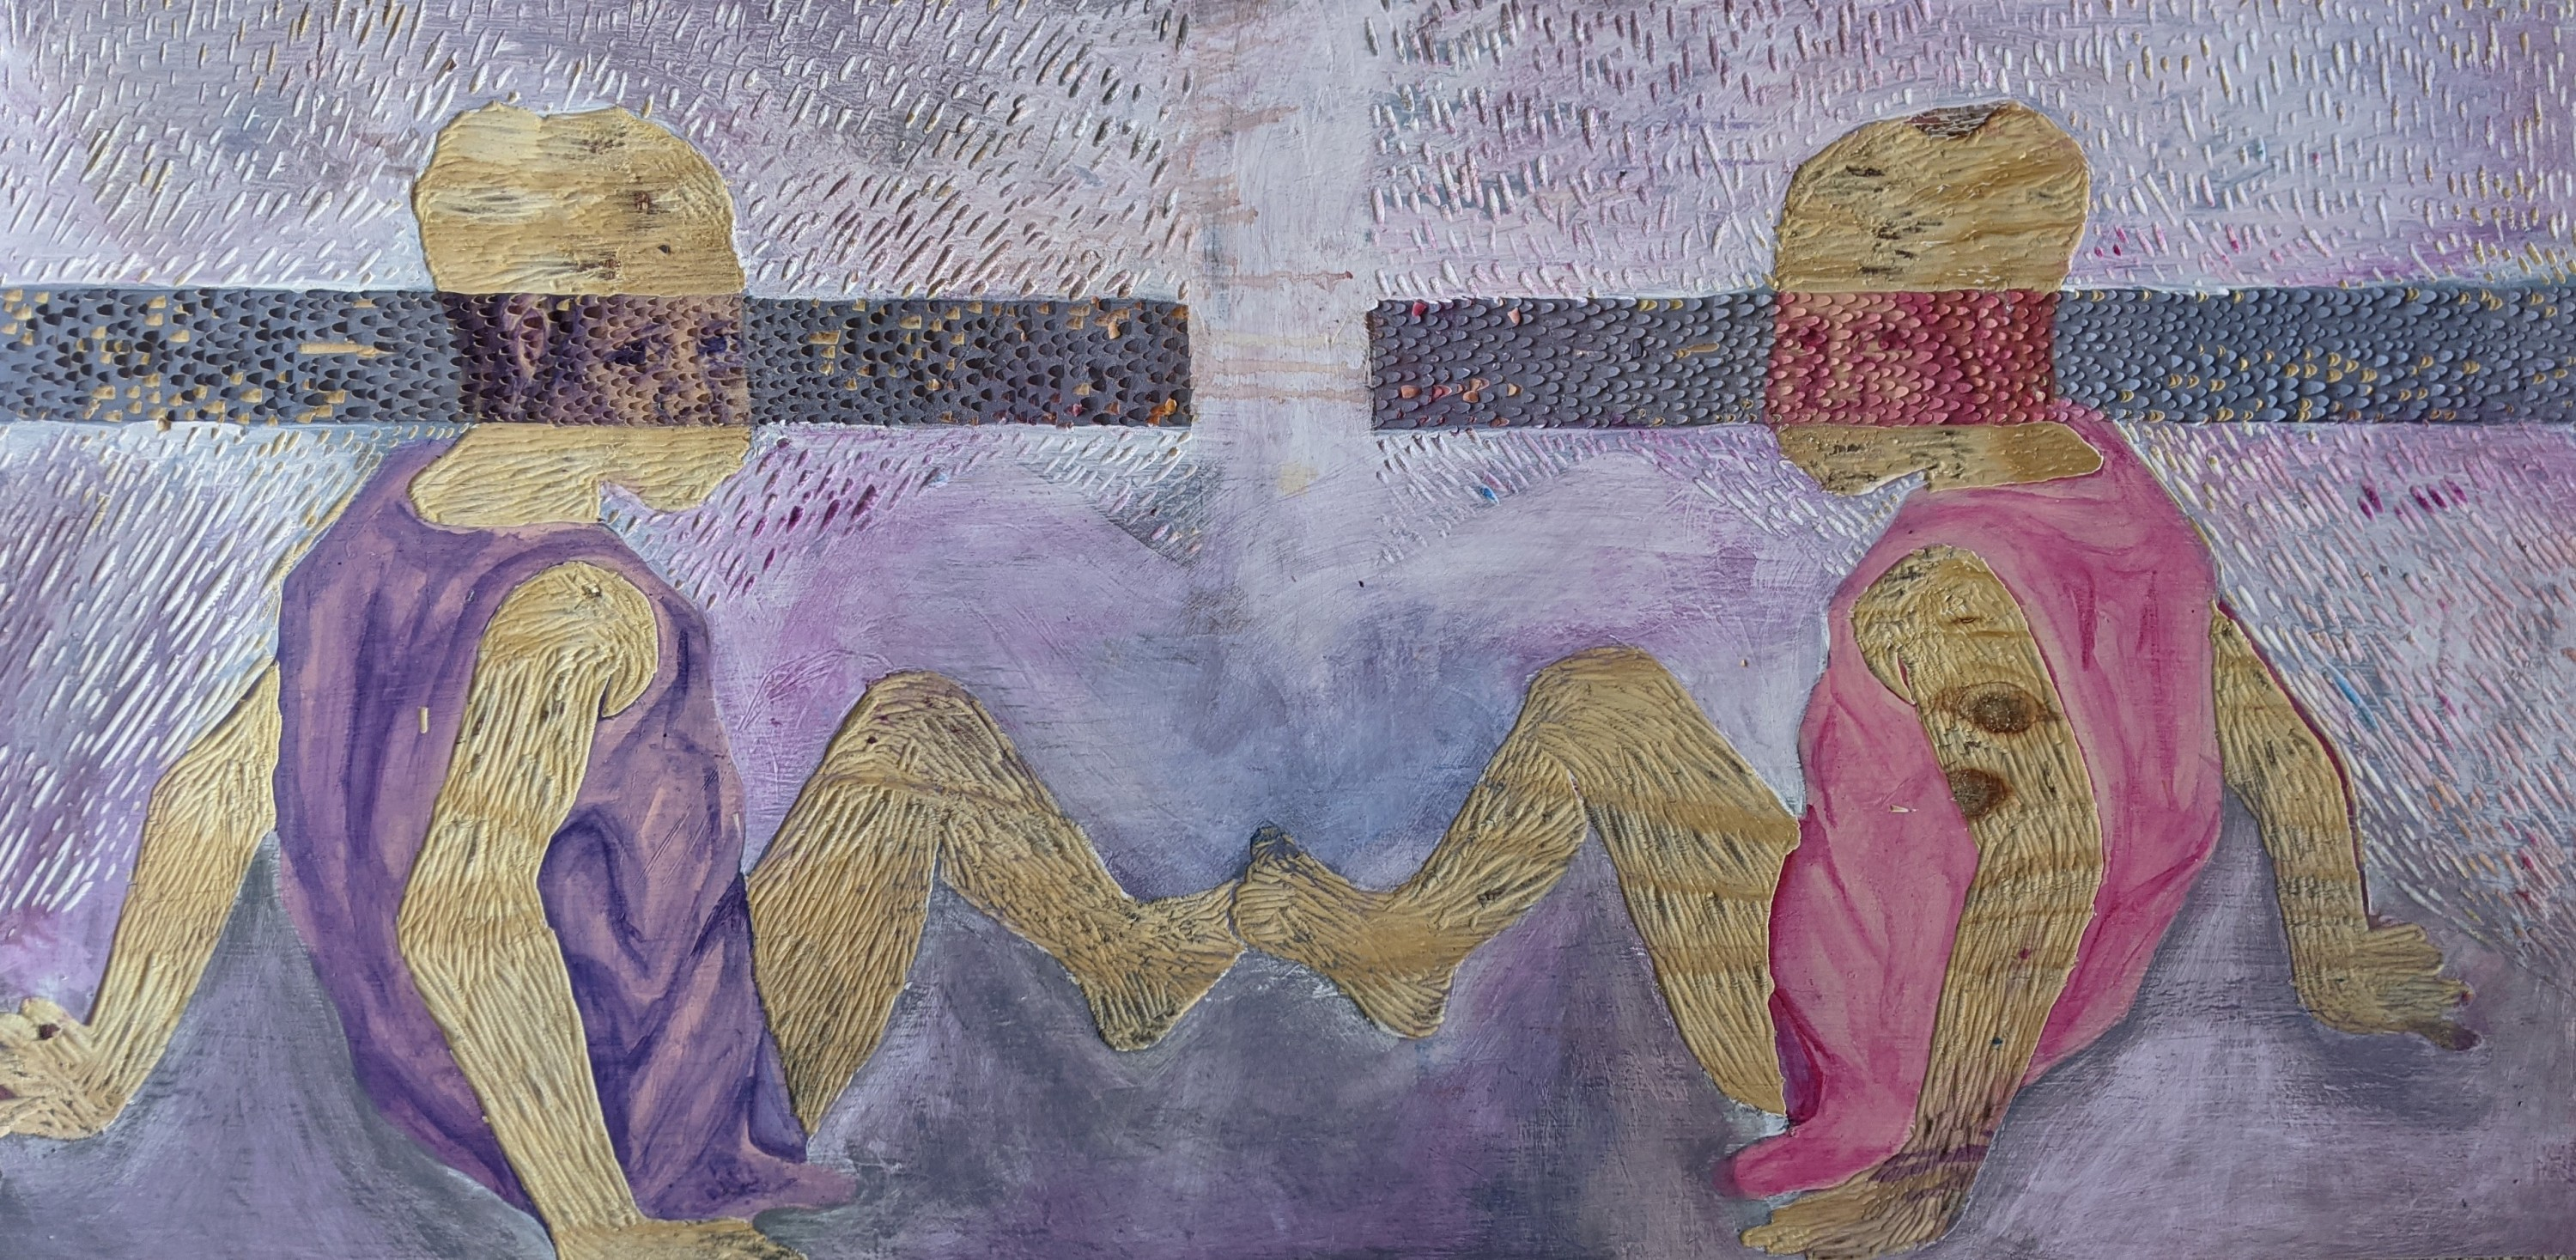 Image of two figures mirroring each other by sitting and facing each other. Their bodies are carved out except for their dress and an area across the eyes.